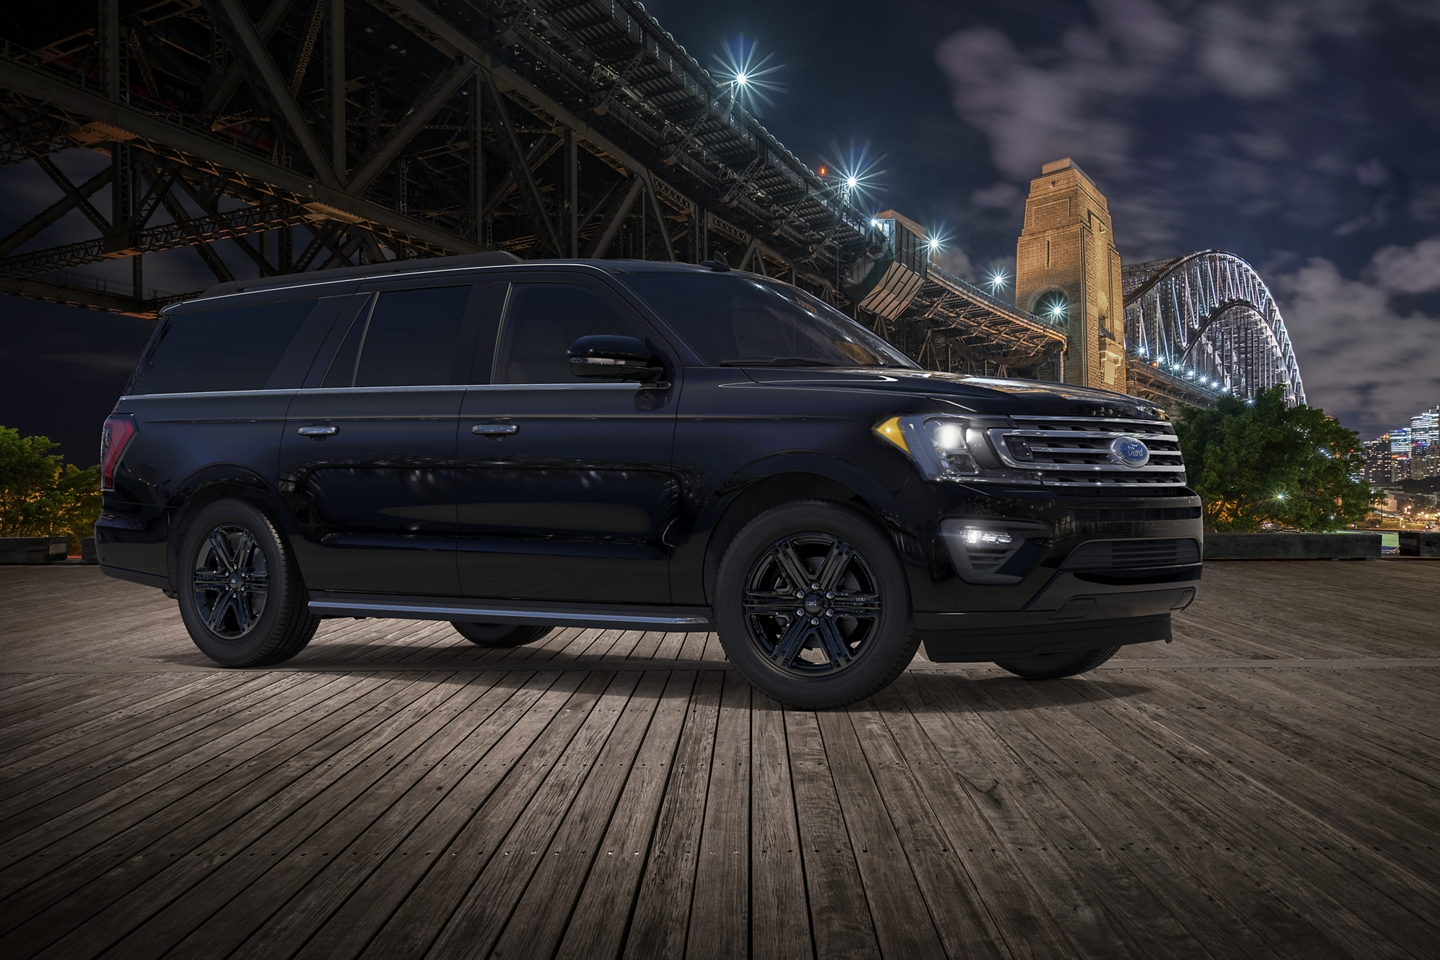 2020 Ford Expedition for Sale near Richardson, TX